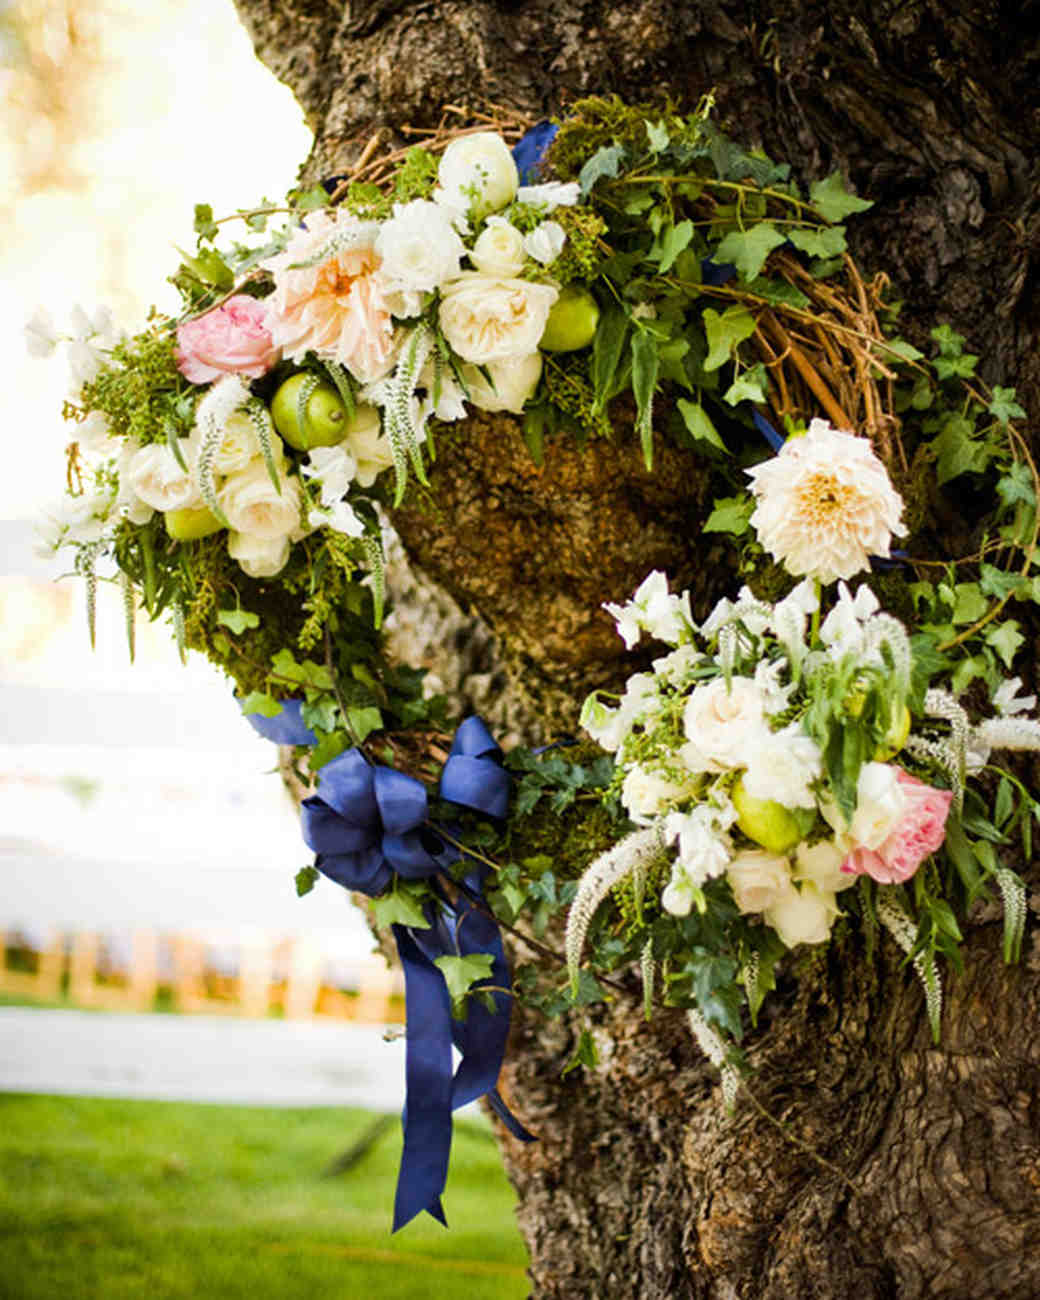 rw_0610_edward_jane_wreath2.jpg